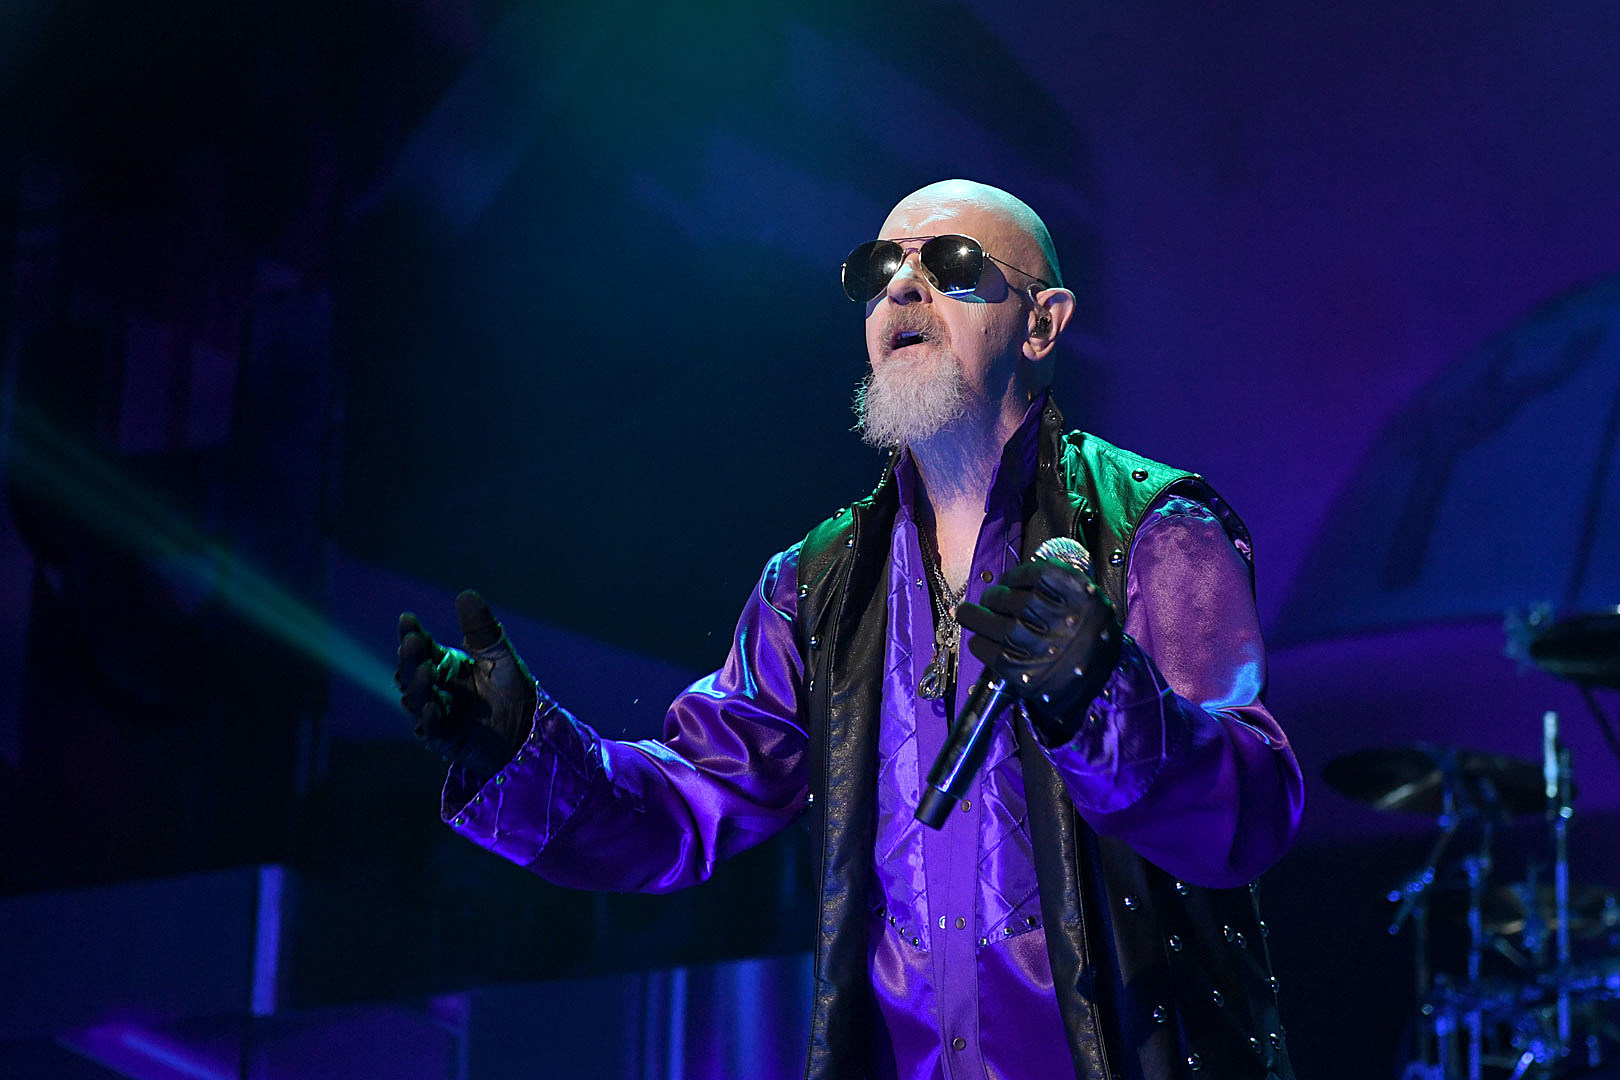 Rob Halford Reveals Cancer Battle, Now in Remission